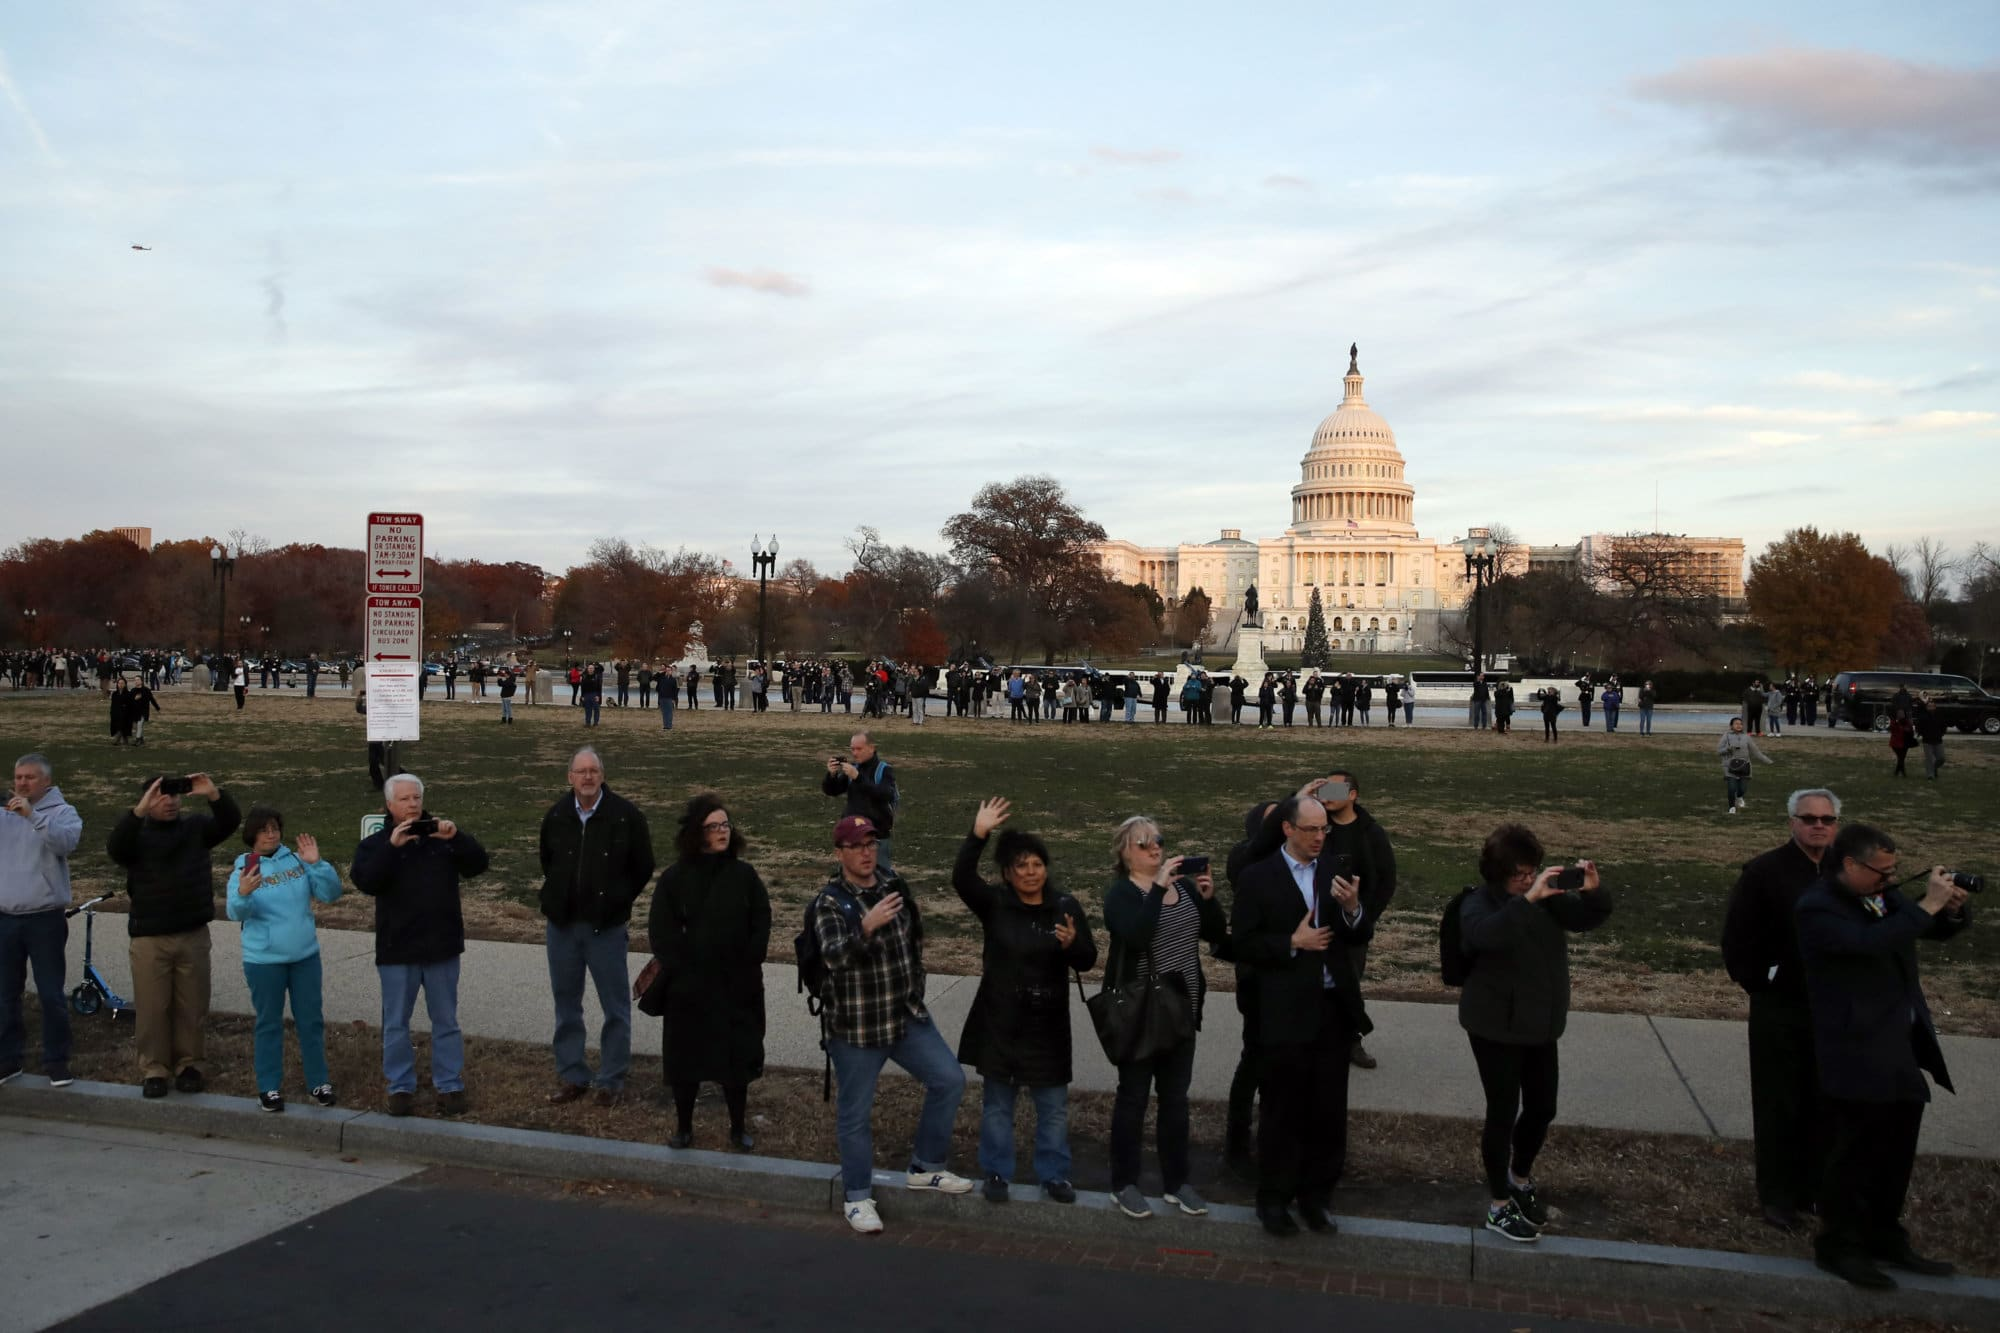 People watch as the hearse carrying the remains of former President George H.W. Bush passes by the West Front of the U.S. Capitol, Monday, Dec. 3, 2018, in Washington.(AP Photo/Alex Brandon, Pool)